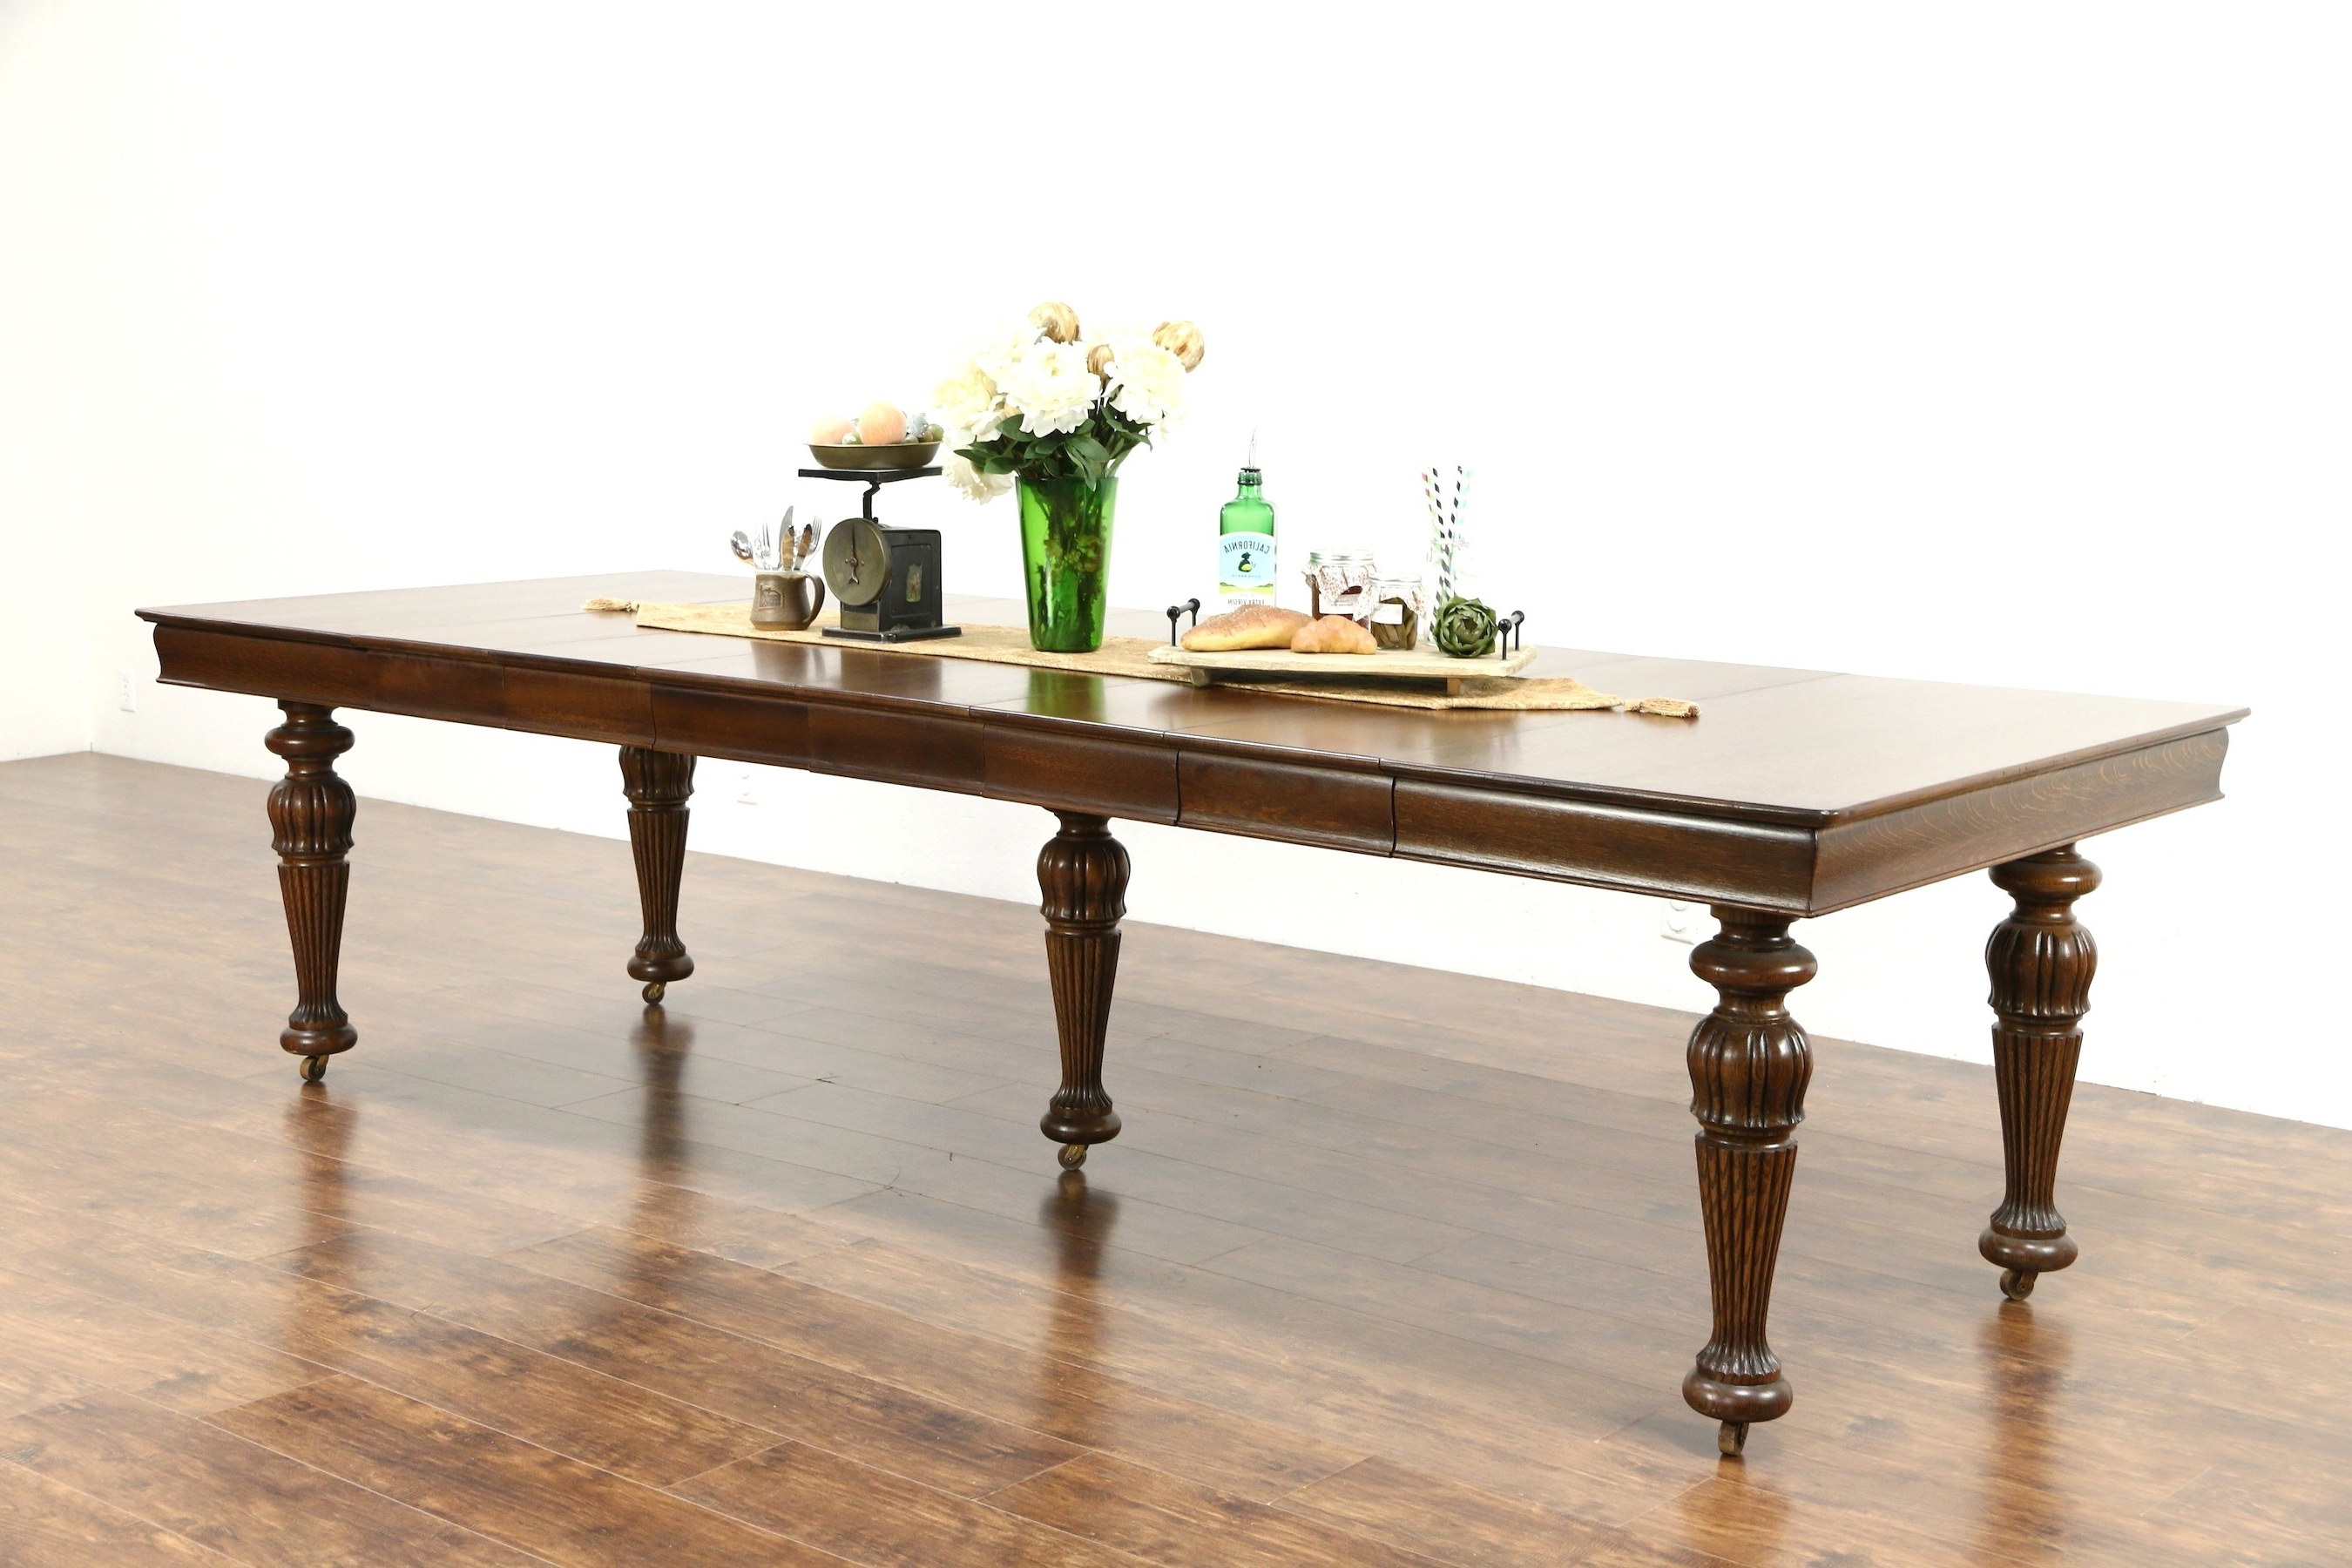 """Square Oak Antique 1900 Dining Table, 6 Leaves, Extends 9' 9"""" – Harp Intended For Trendy Square Oak Dining Tables (View 15 of 25)"""